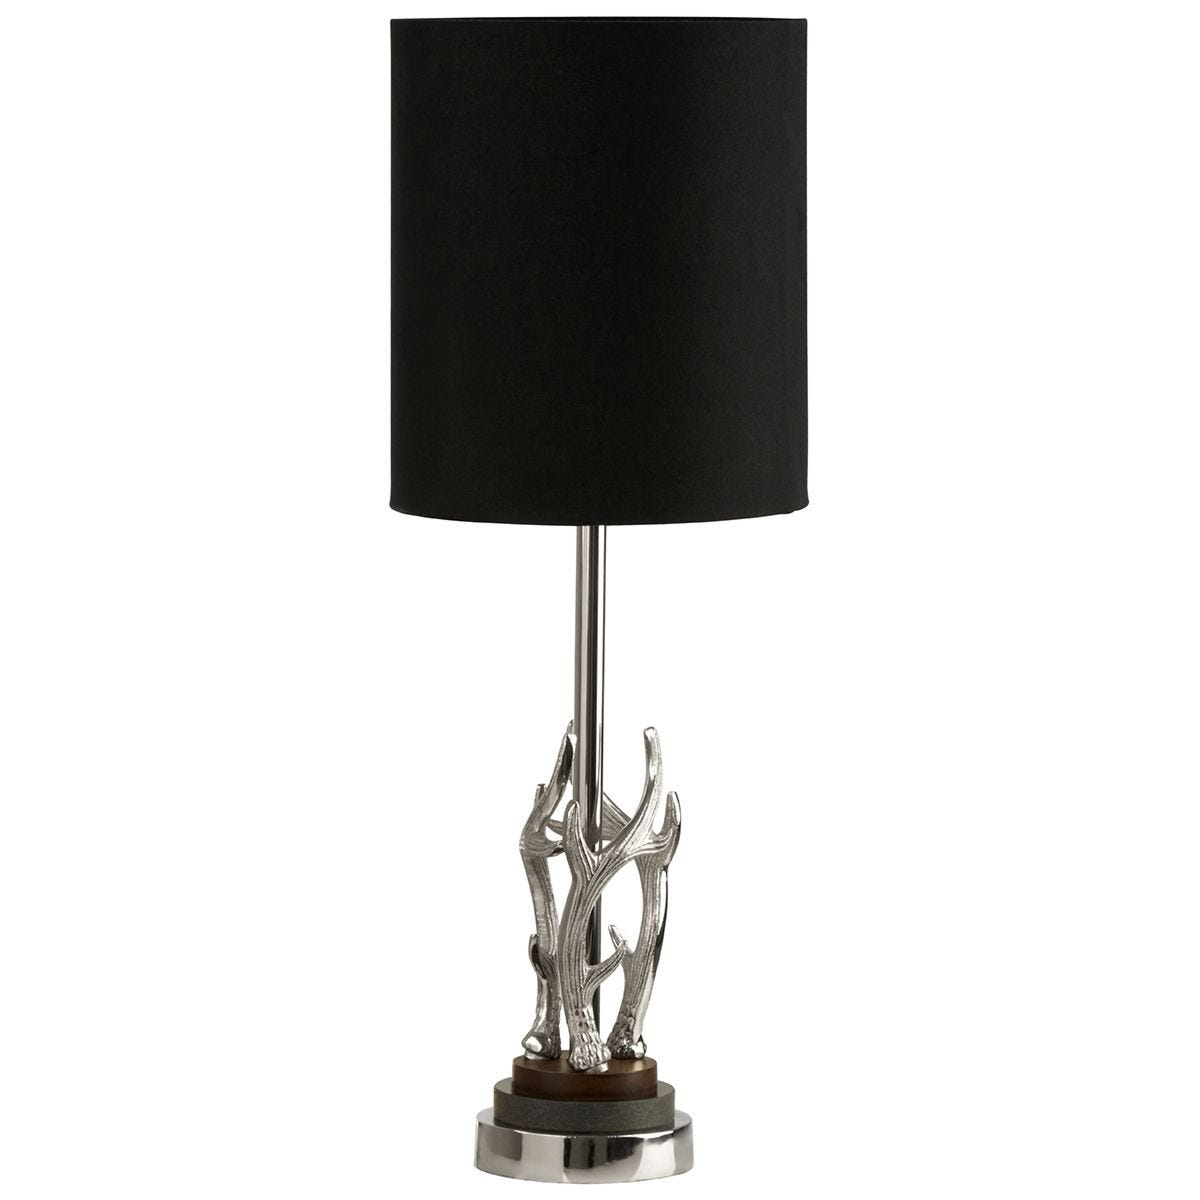 Premier Housewares Antler Table Lamp with Marble Base Aluminium & Black Drum Shade